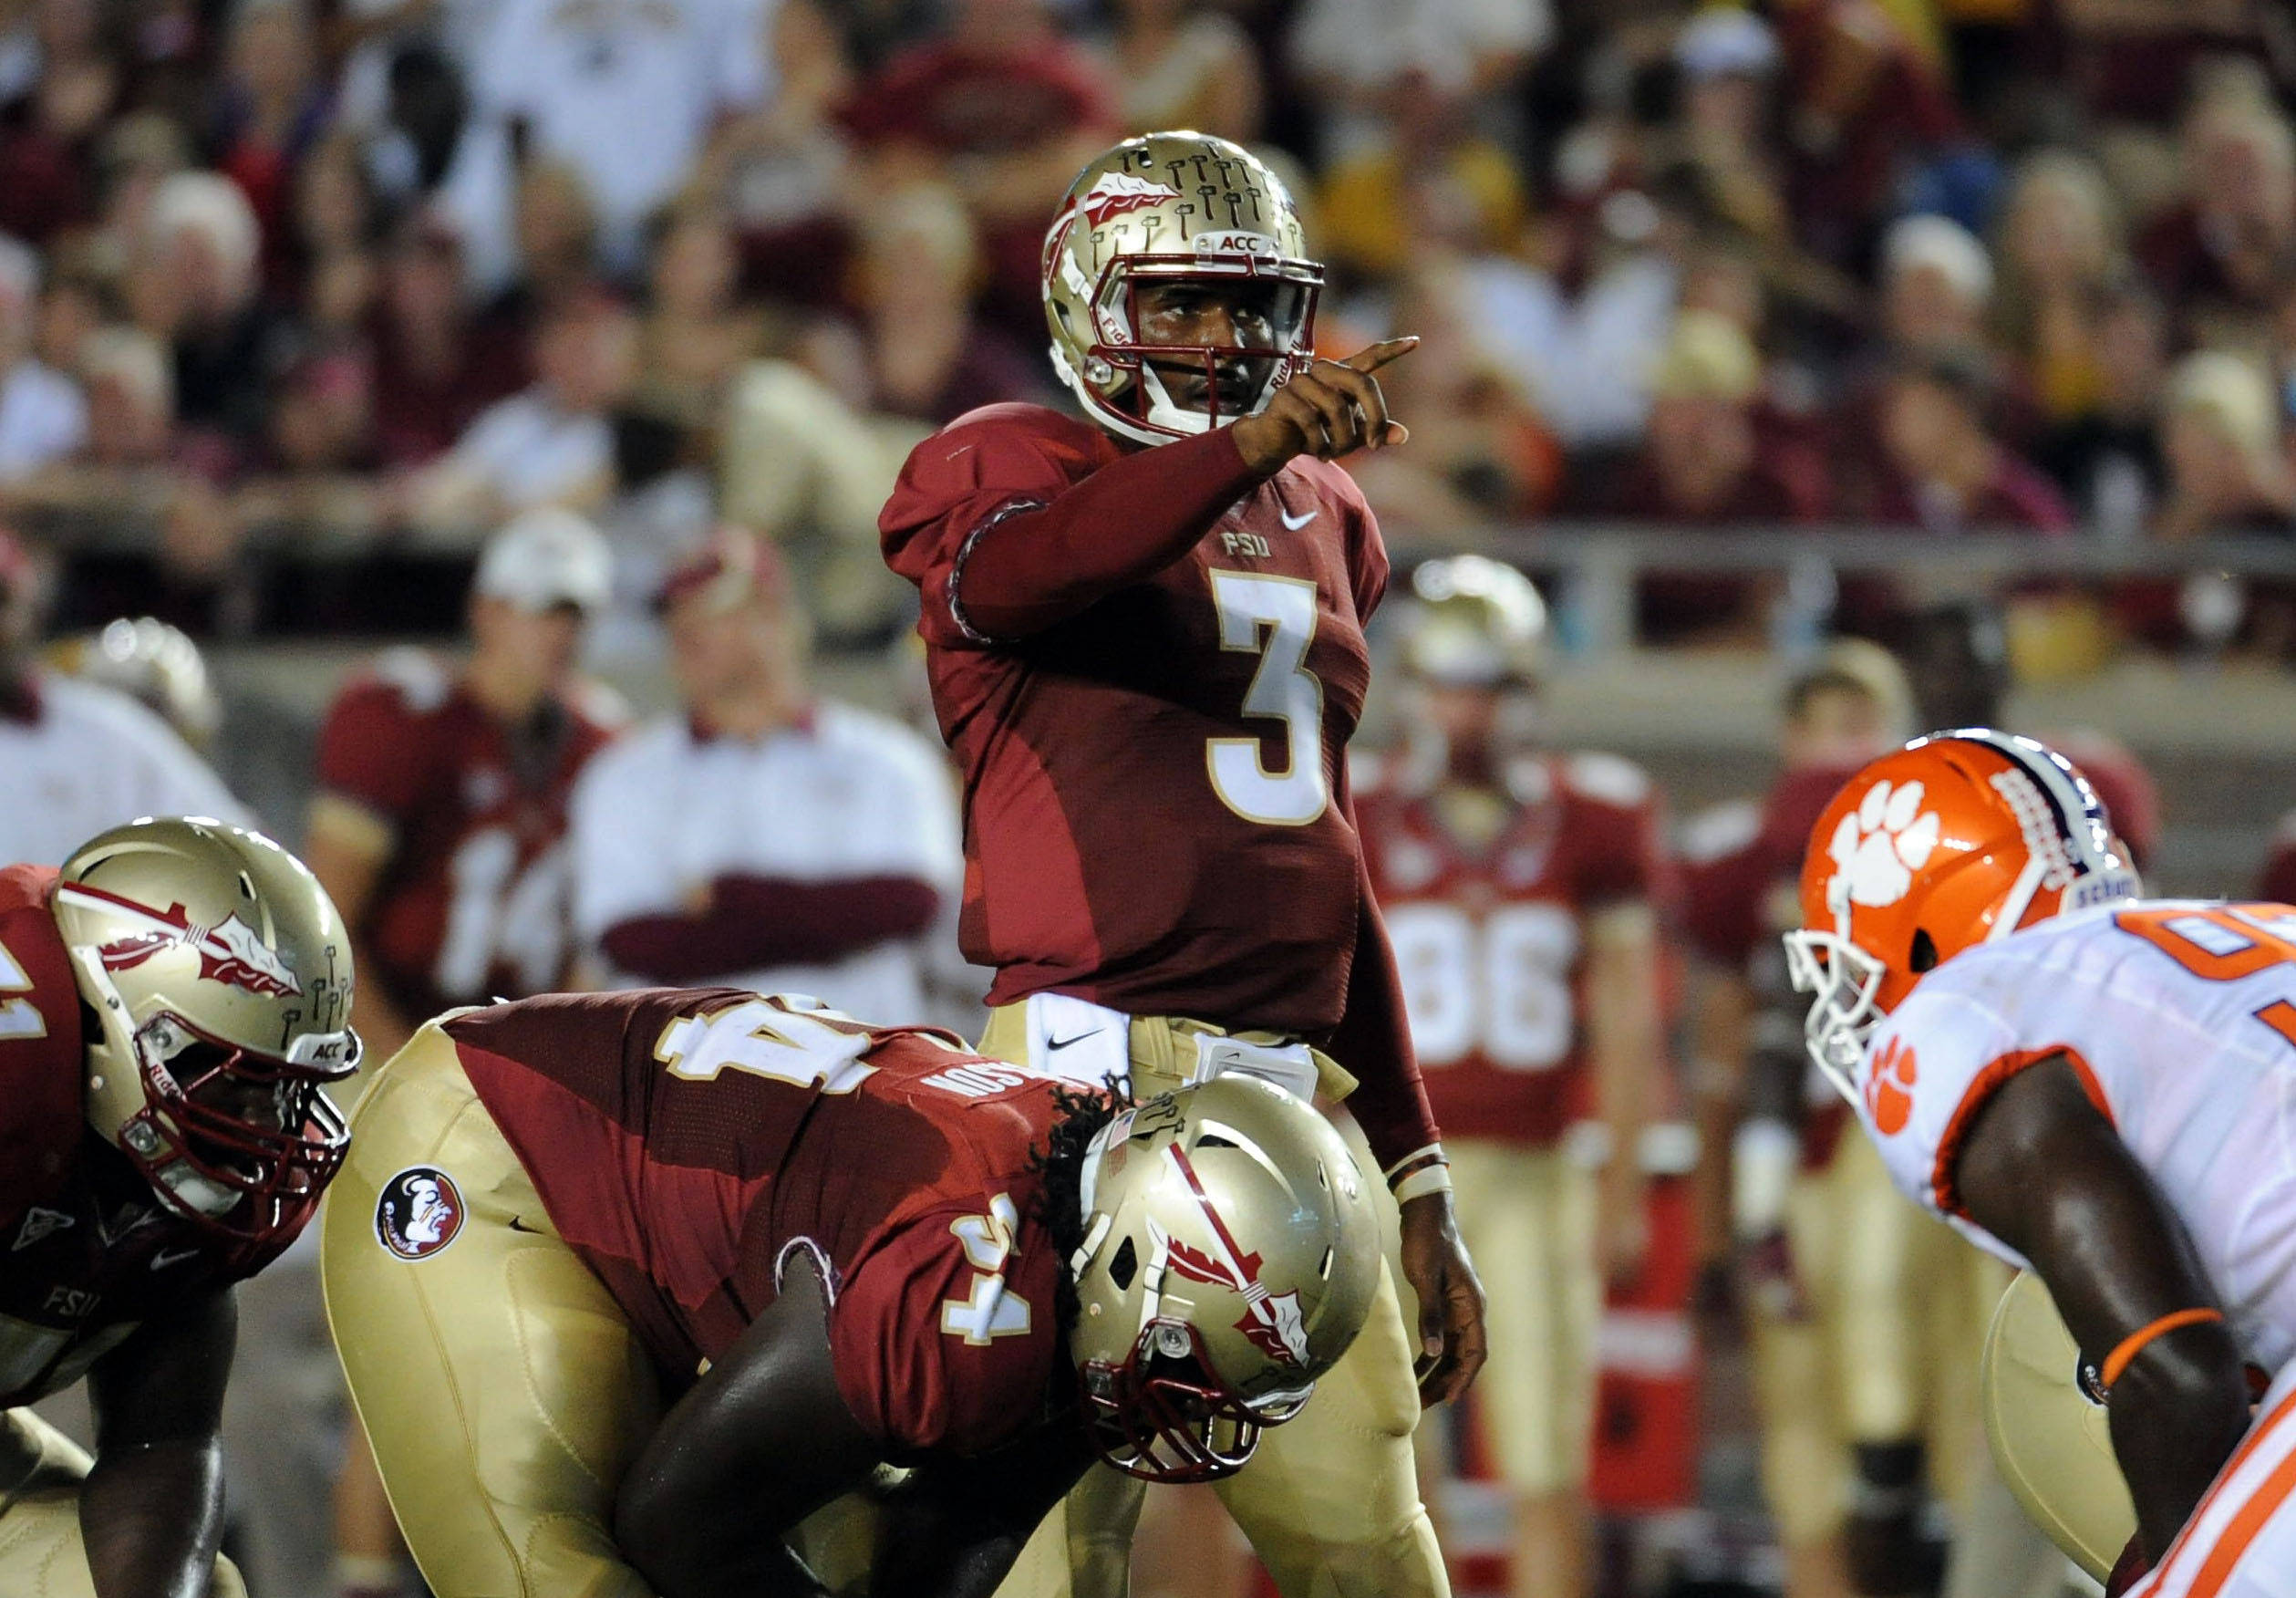 Sept 22, 2012;  Tallahassee, Florida, USA; Florida State Seminoles quarterback E.J. Manuel (3) gestures at the line of scrimmage during the first half of the game against the Clemson Tigers at Doak Campbell Stadium. Mandatory Credit: Melina Vastola-USA TODAY Sports